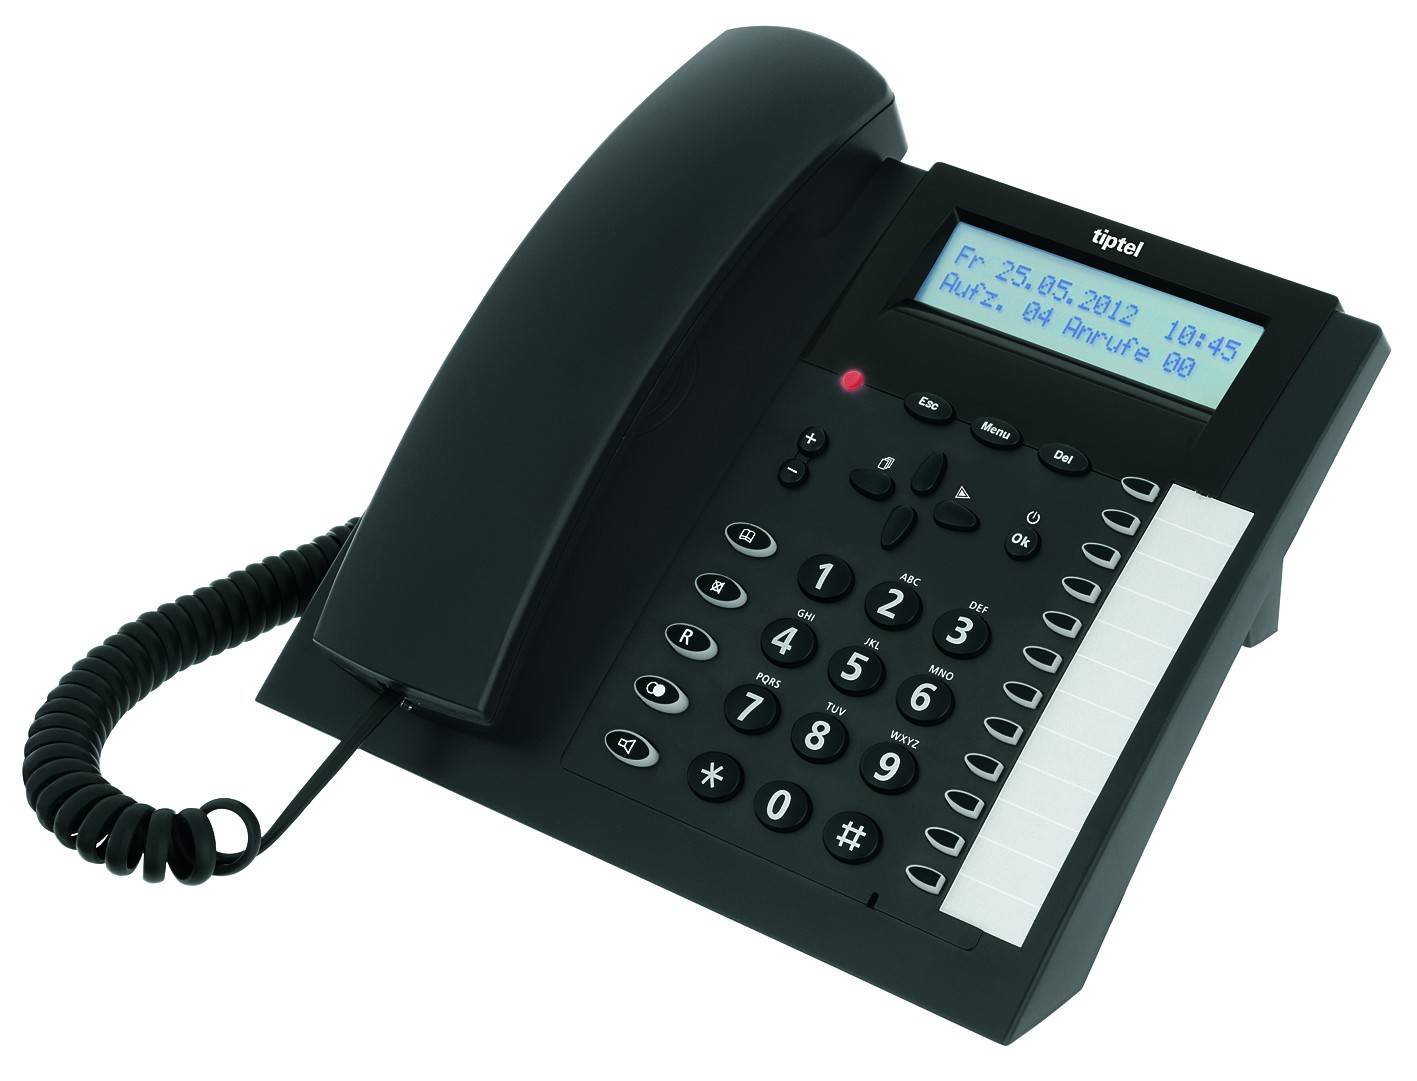 Tiptel 2030 ISDN Business Telephone with Answering Machine